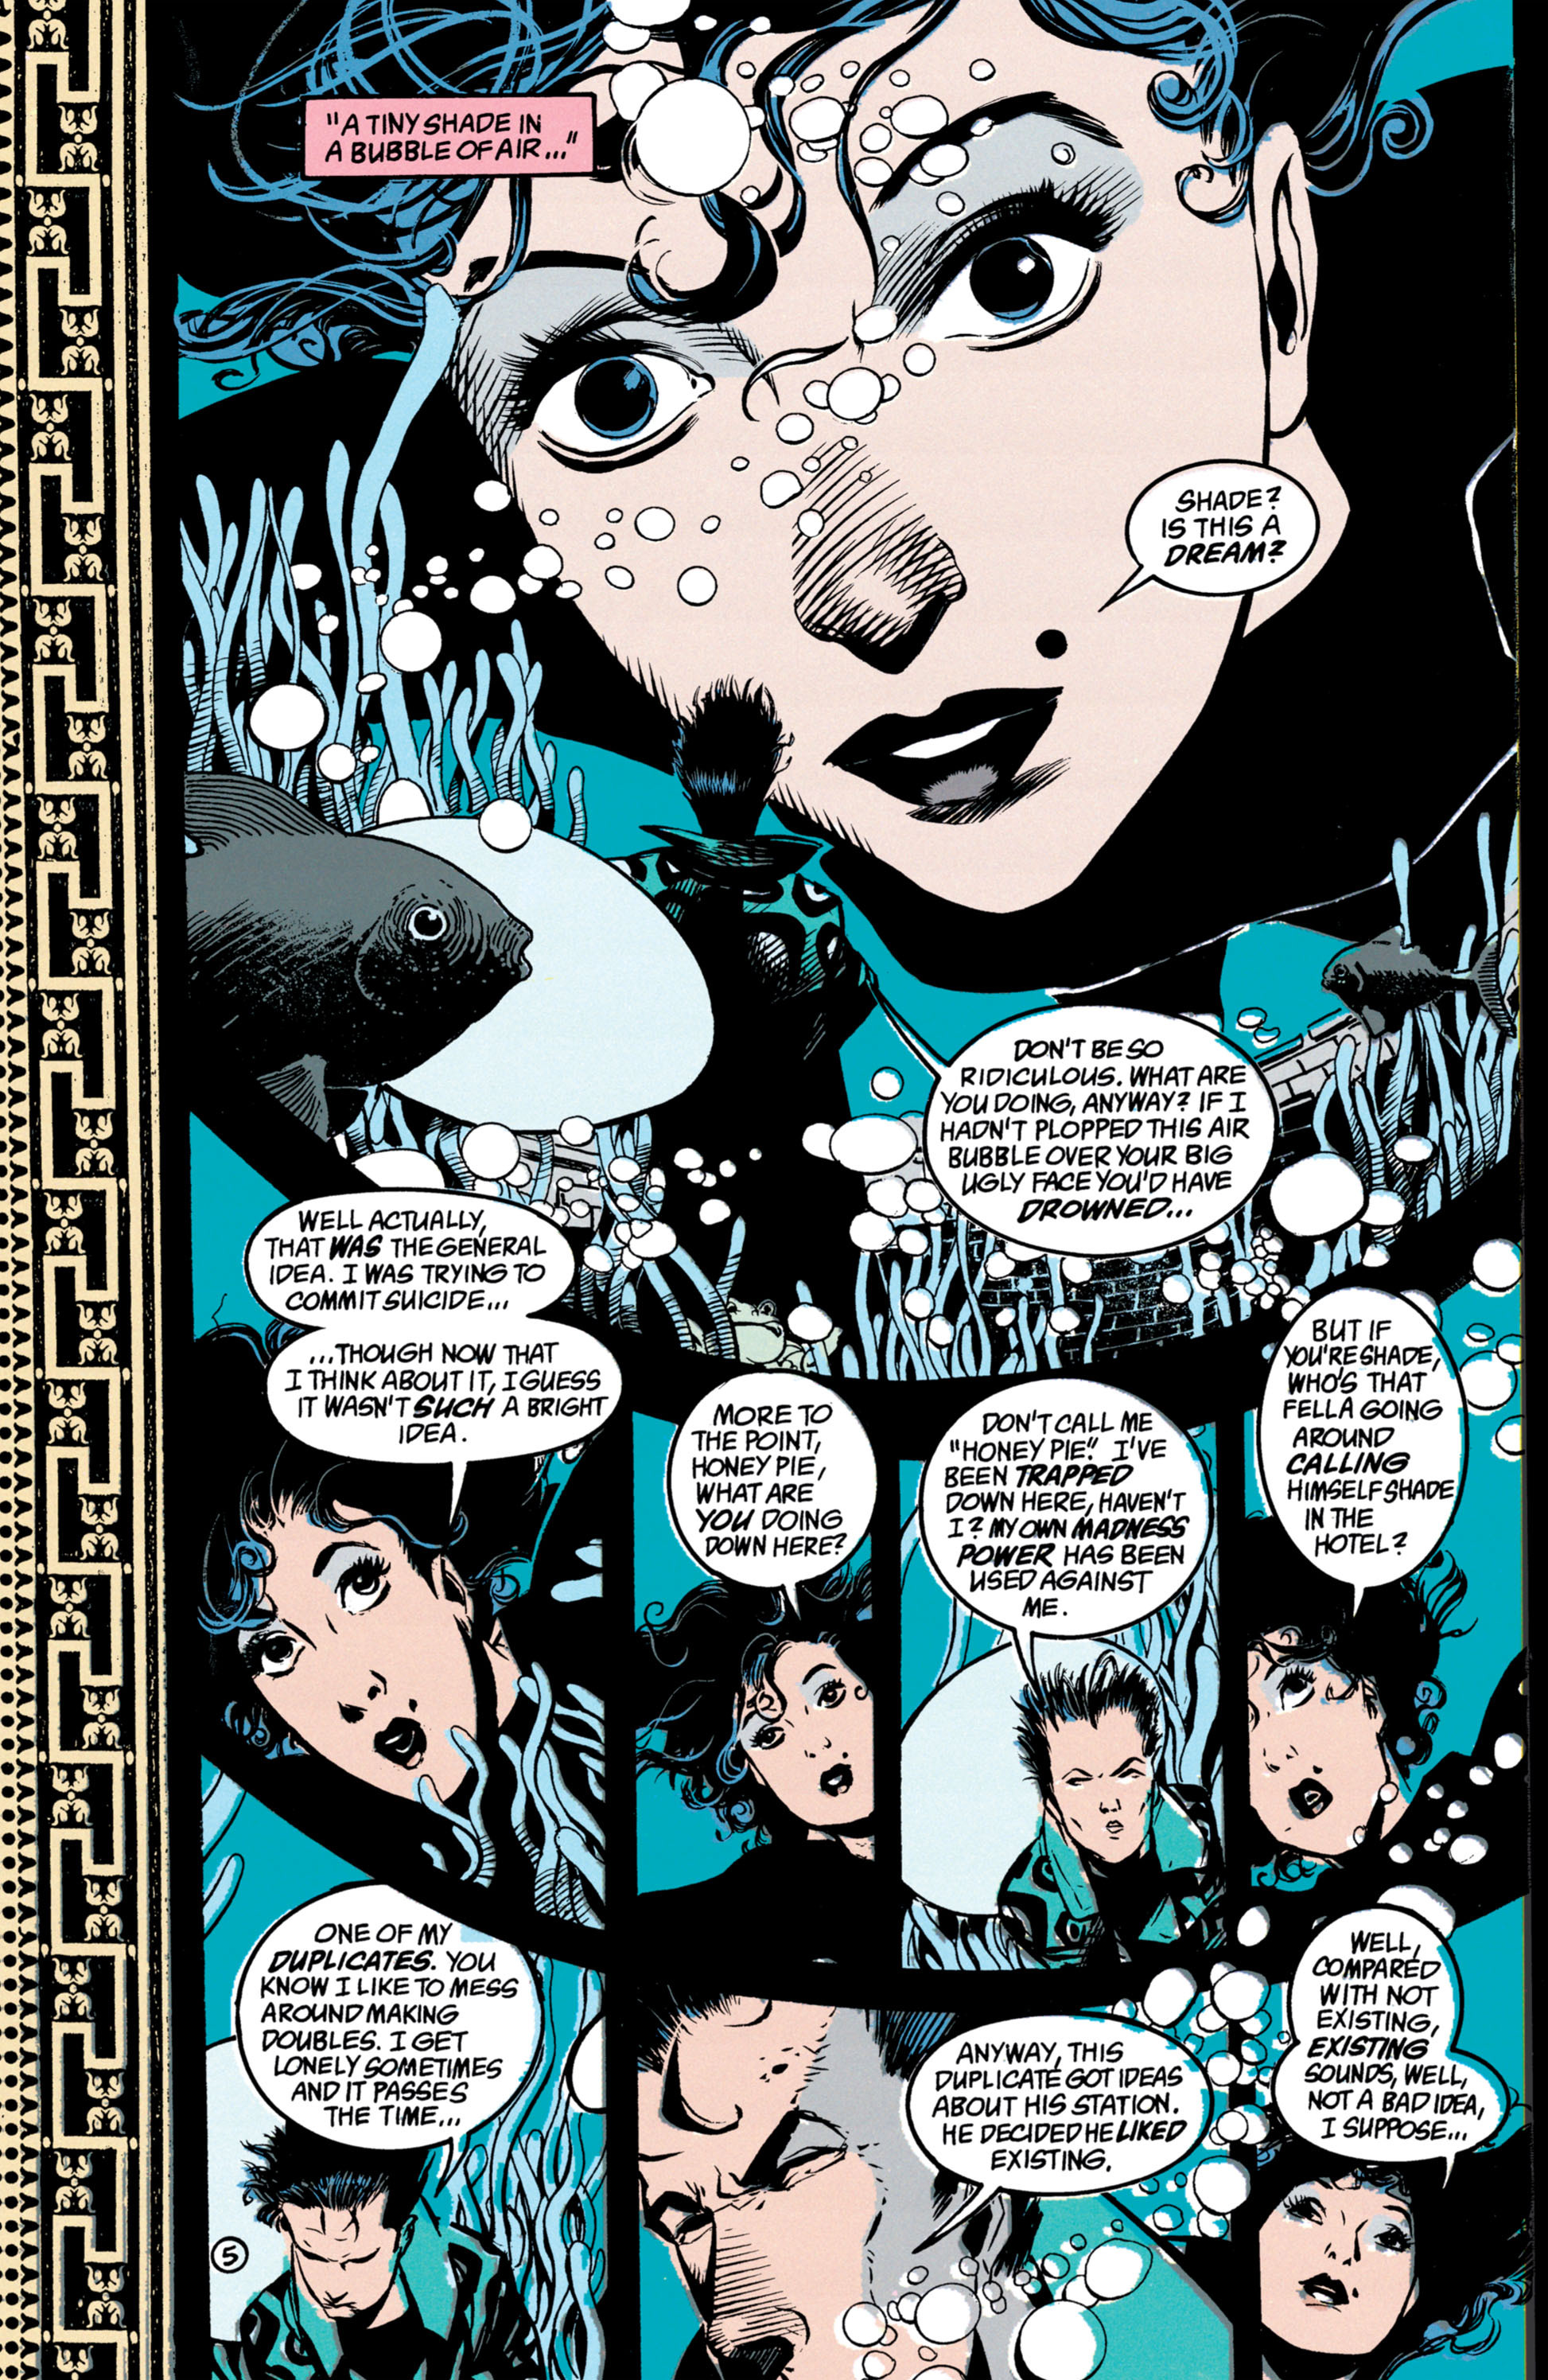 Read online Shade, the Changing Man comic -  Issue #39 - 6